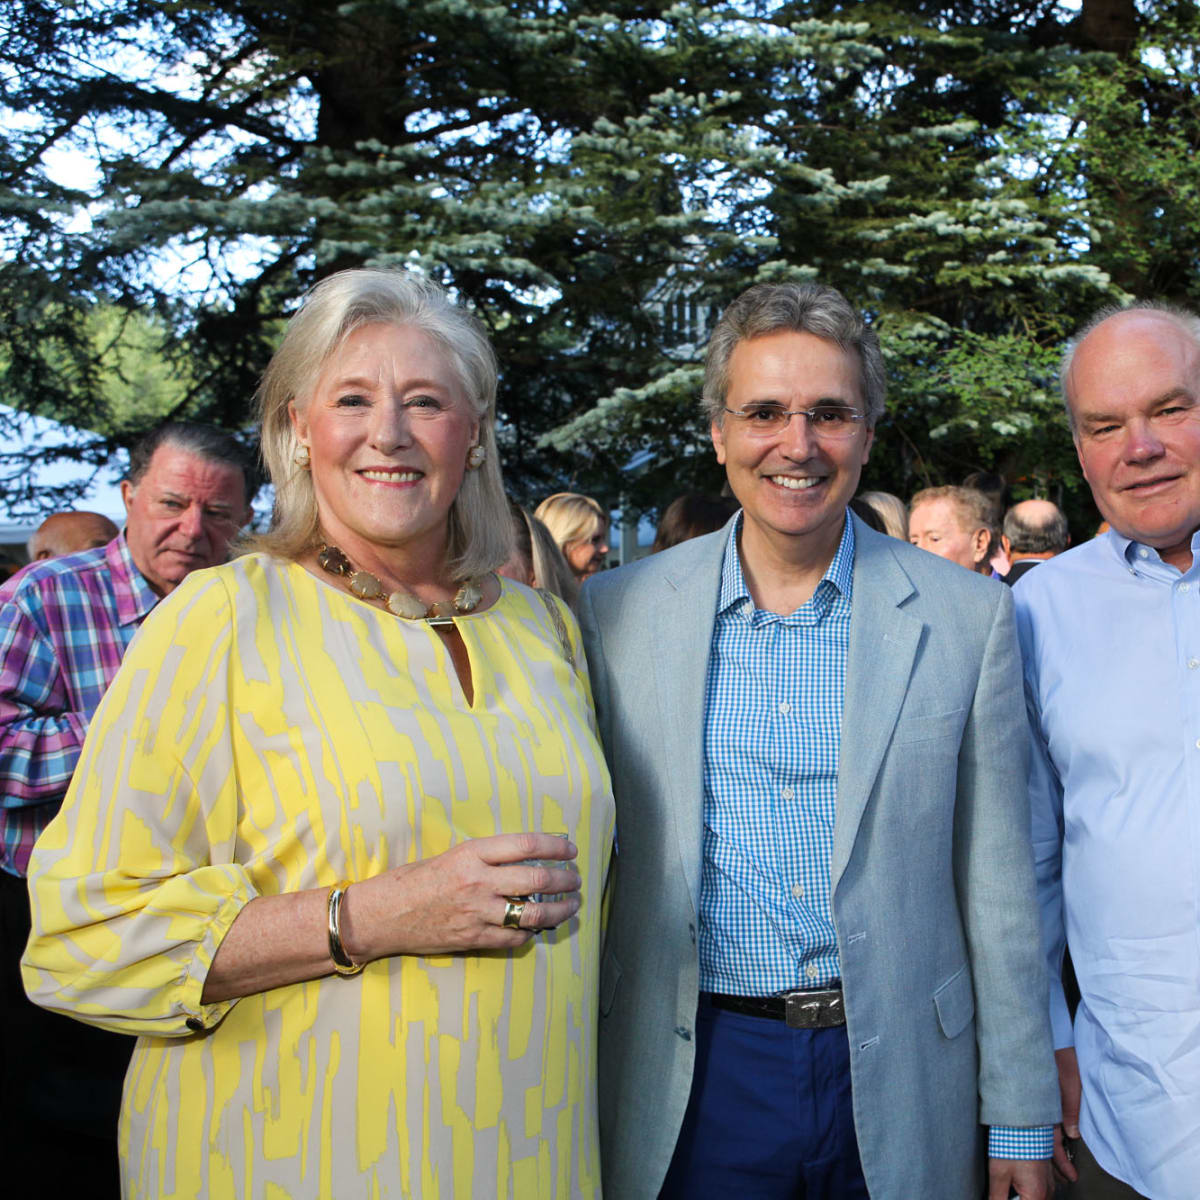 News, Shelby, M.D.Anderson in Aspen, July 2015, Nancy Dunlap, Dr. Ron DePinho, Clint and Nancy Carlson